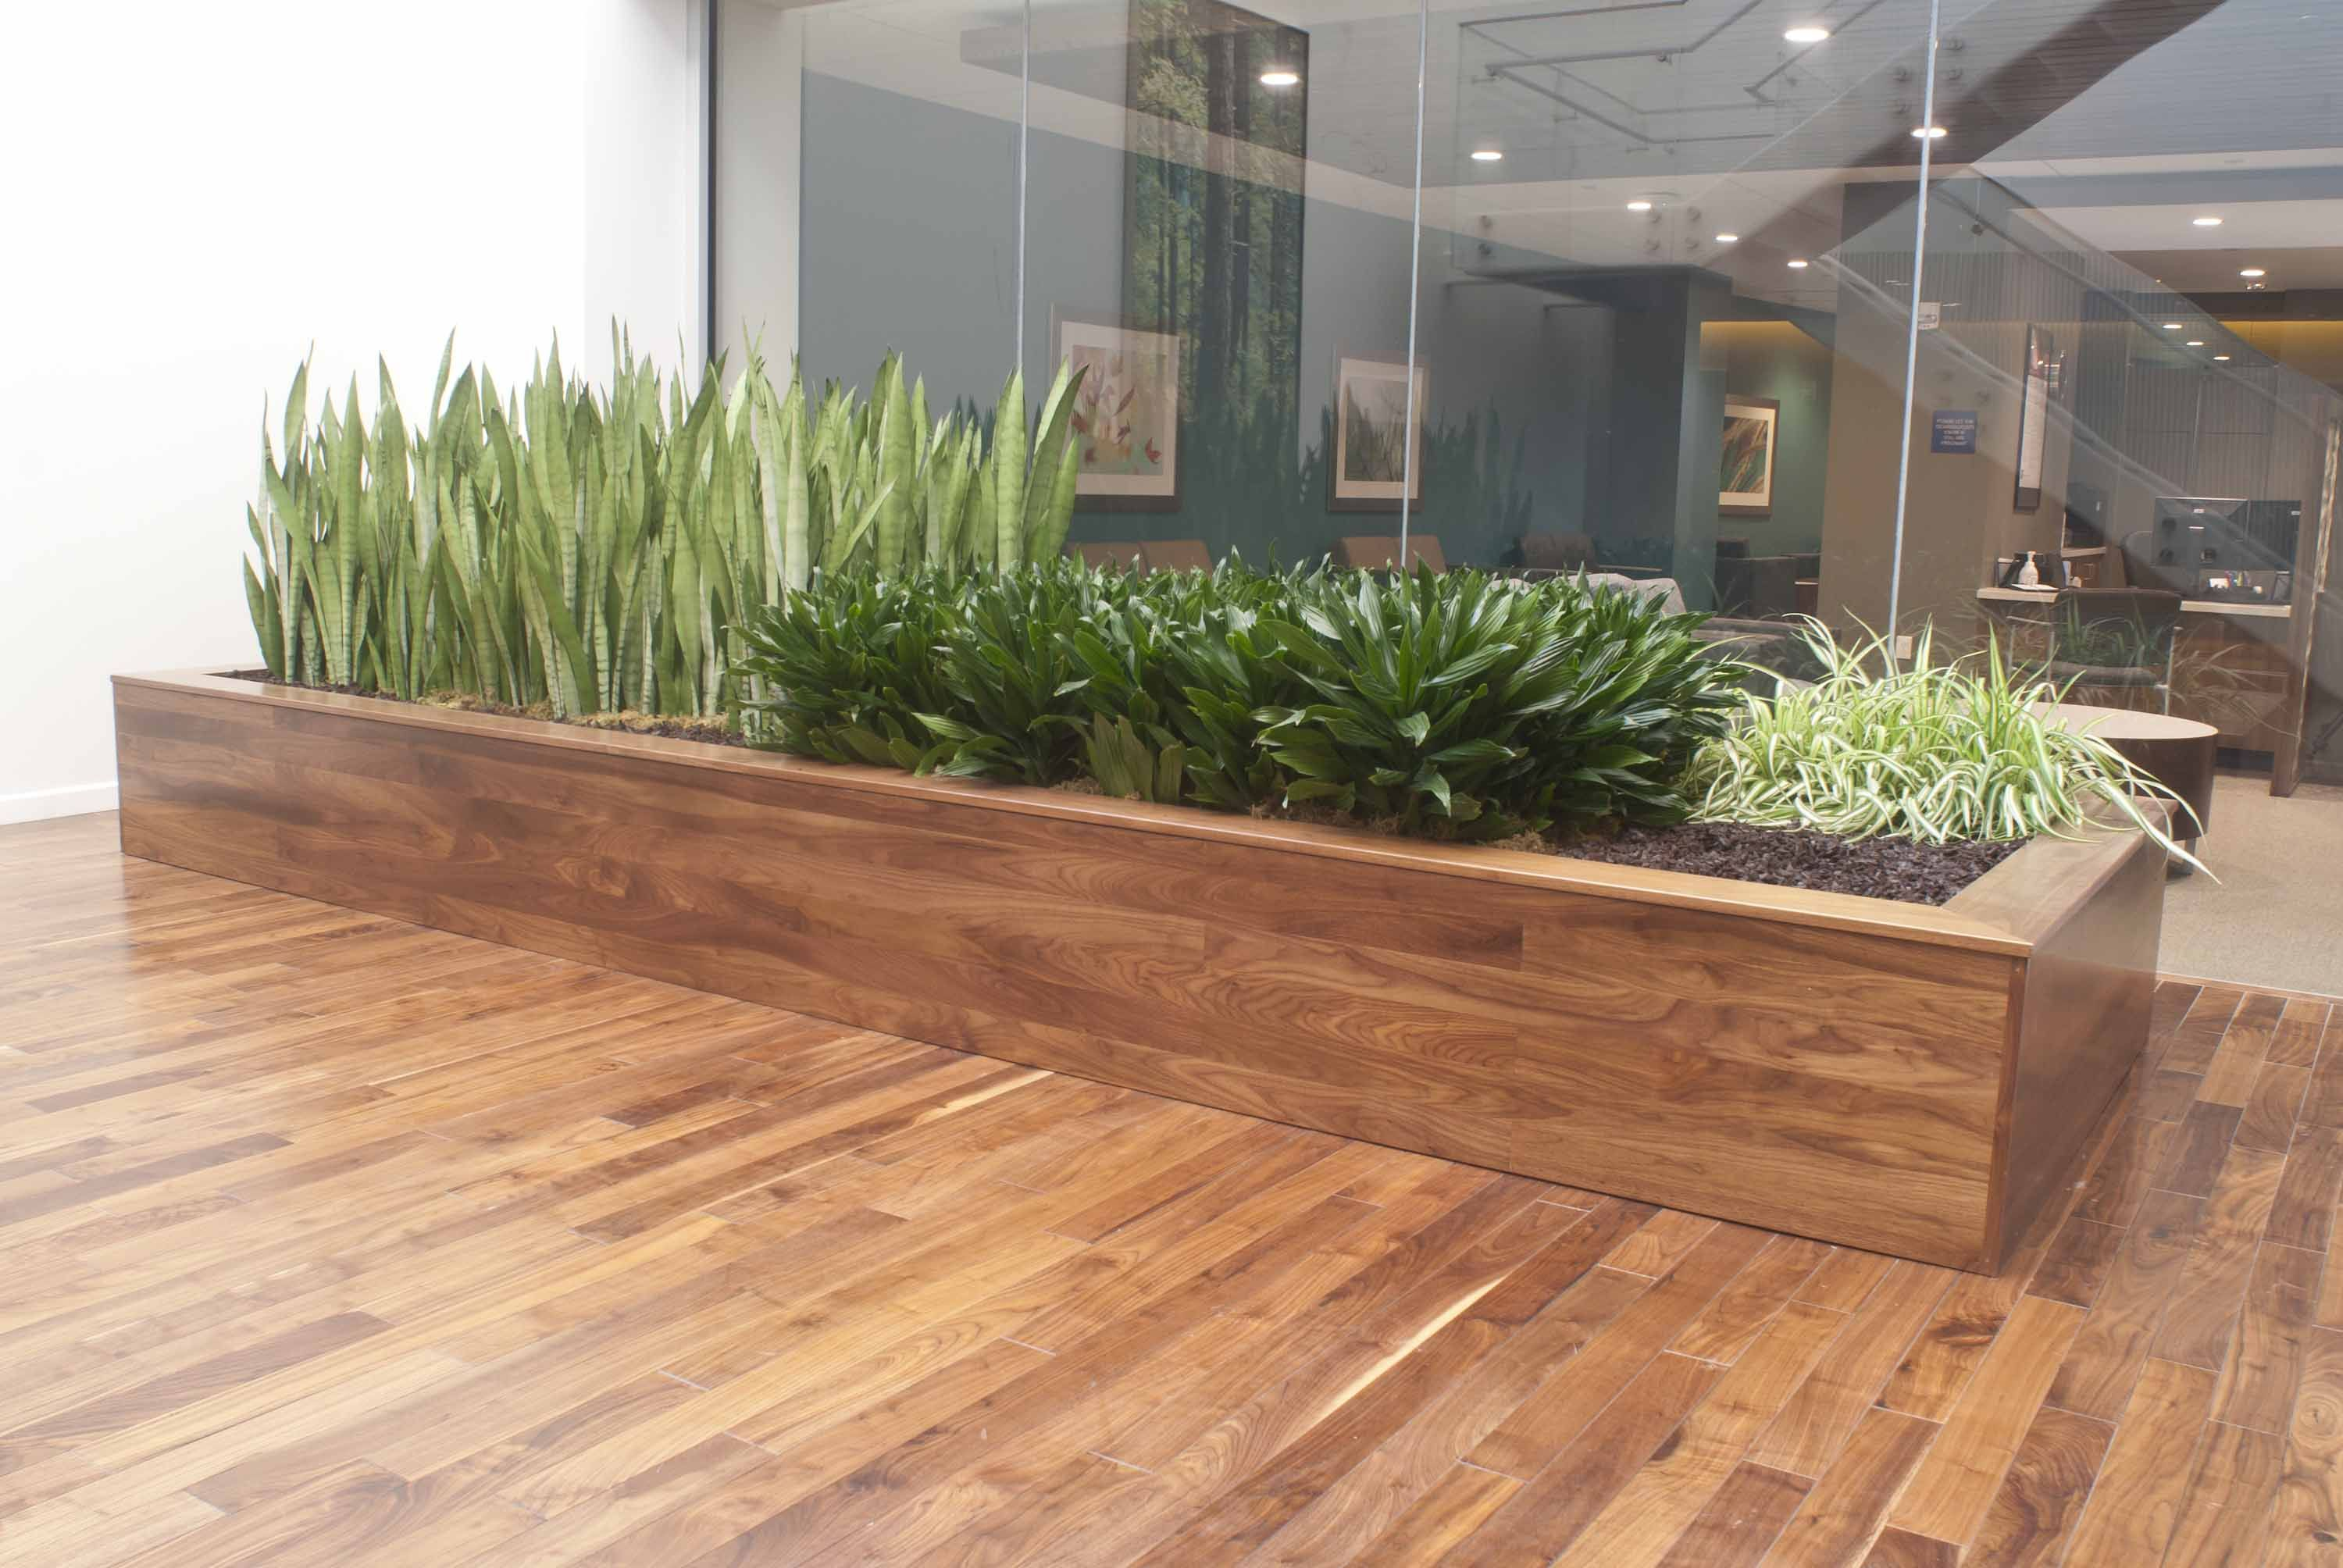 Stylish and modern large-scale planter box created by Engledow Group ...